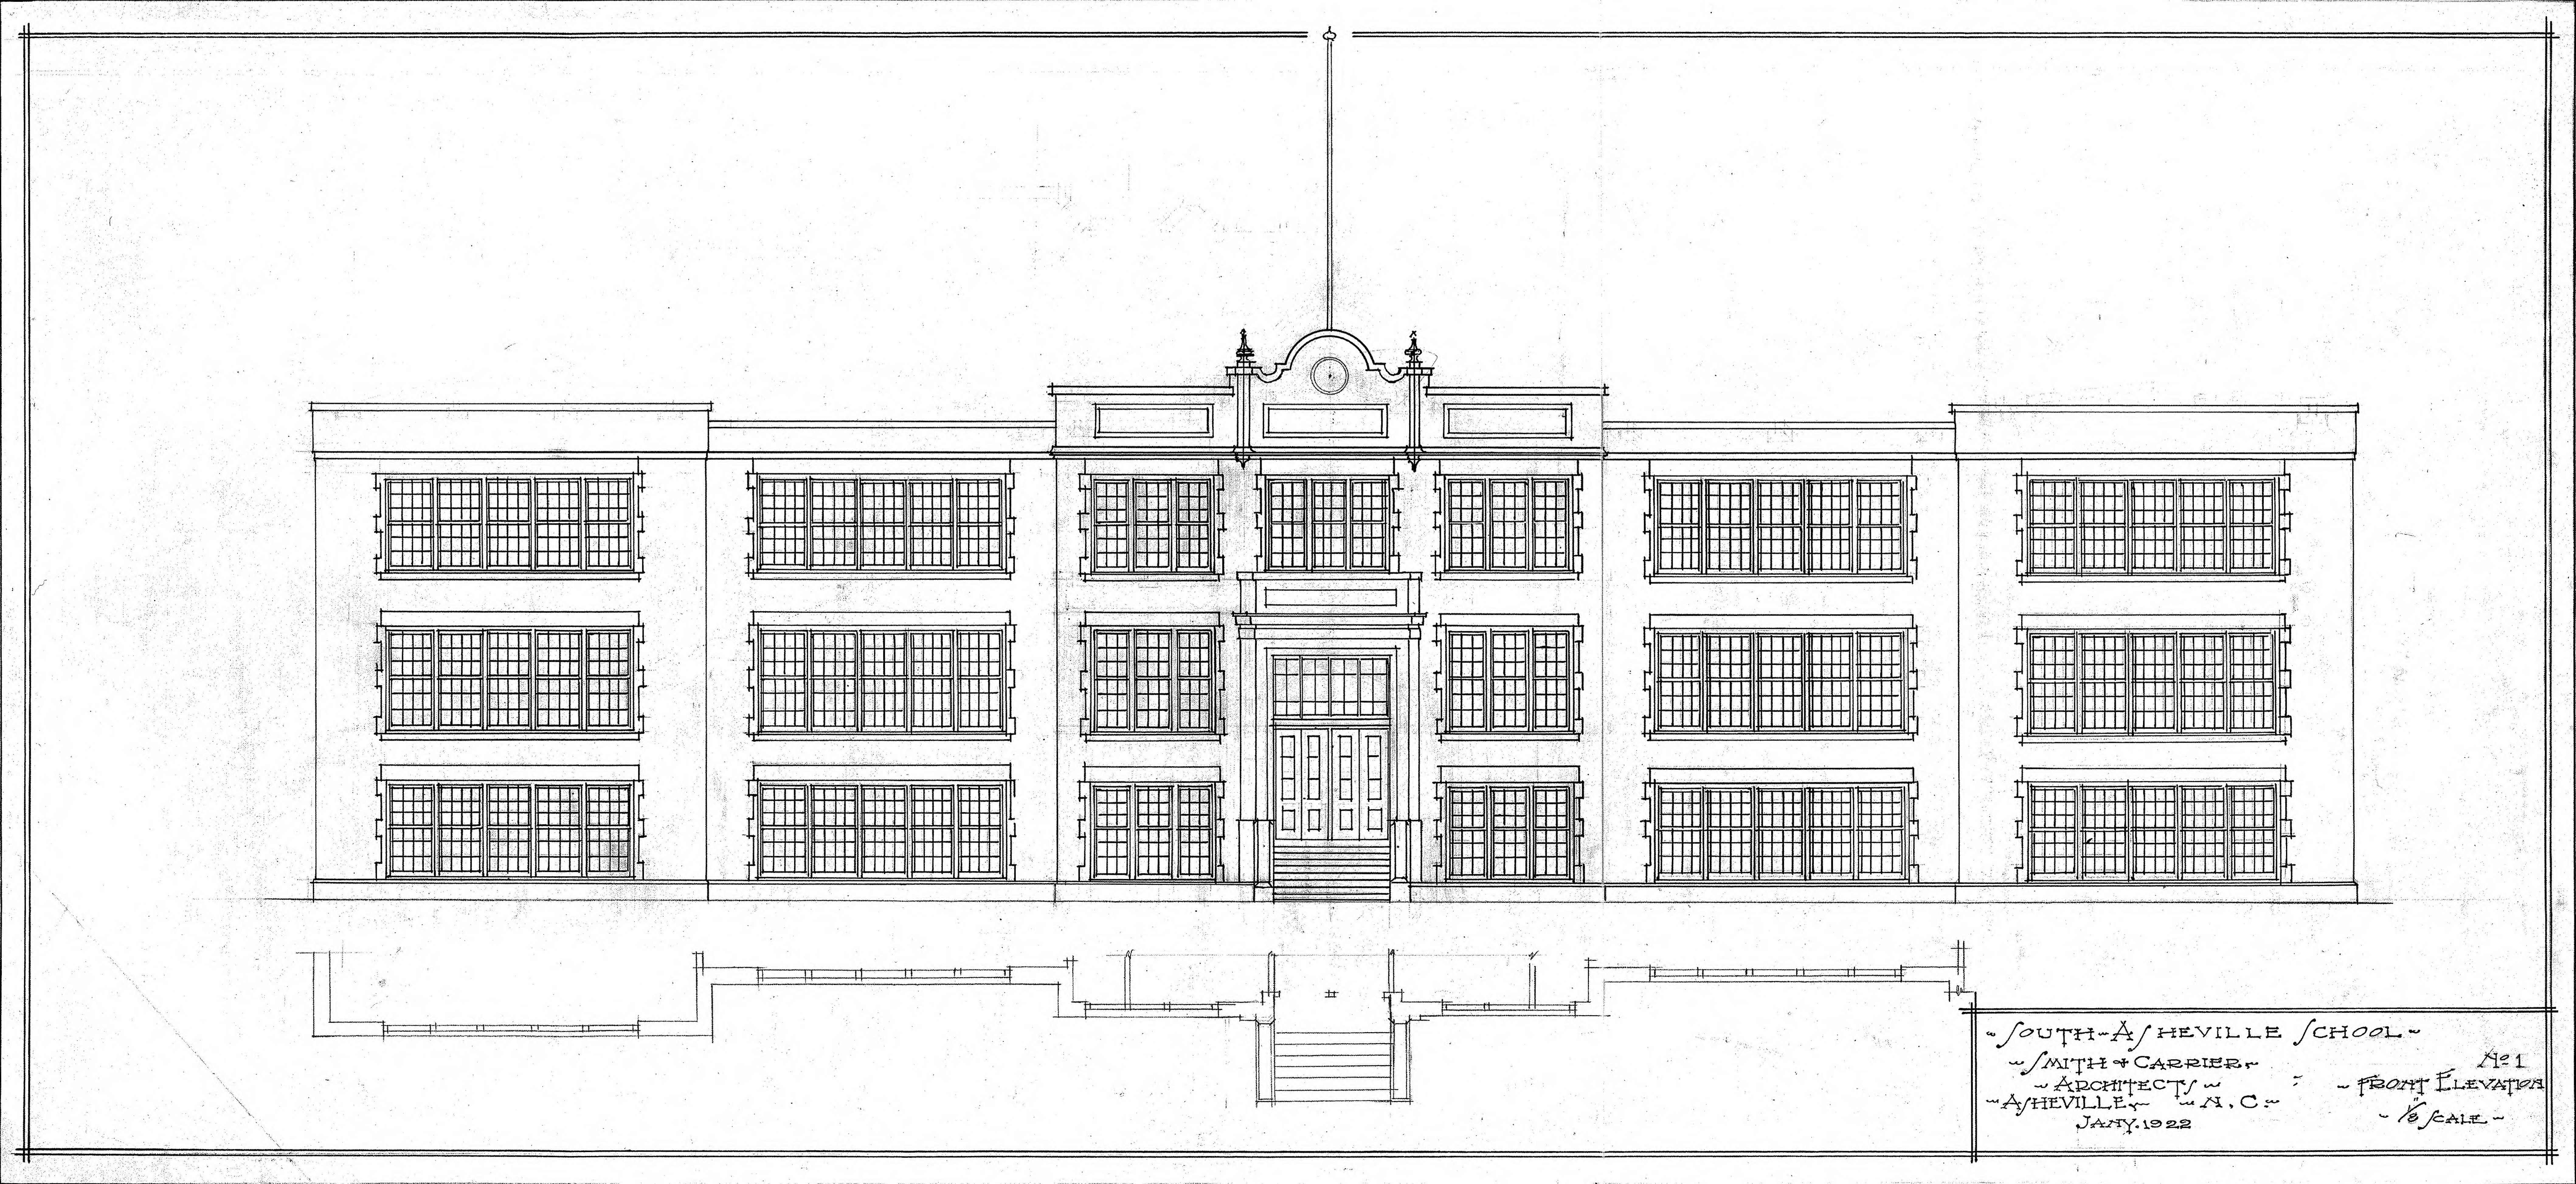 Front Elevation Designs For Schools : South asheville school front elevation no